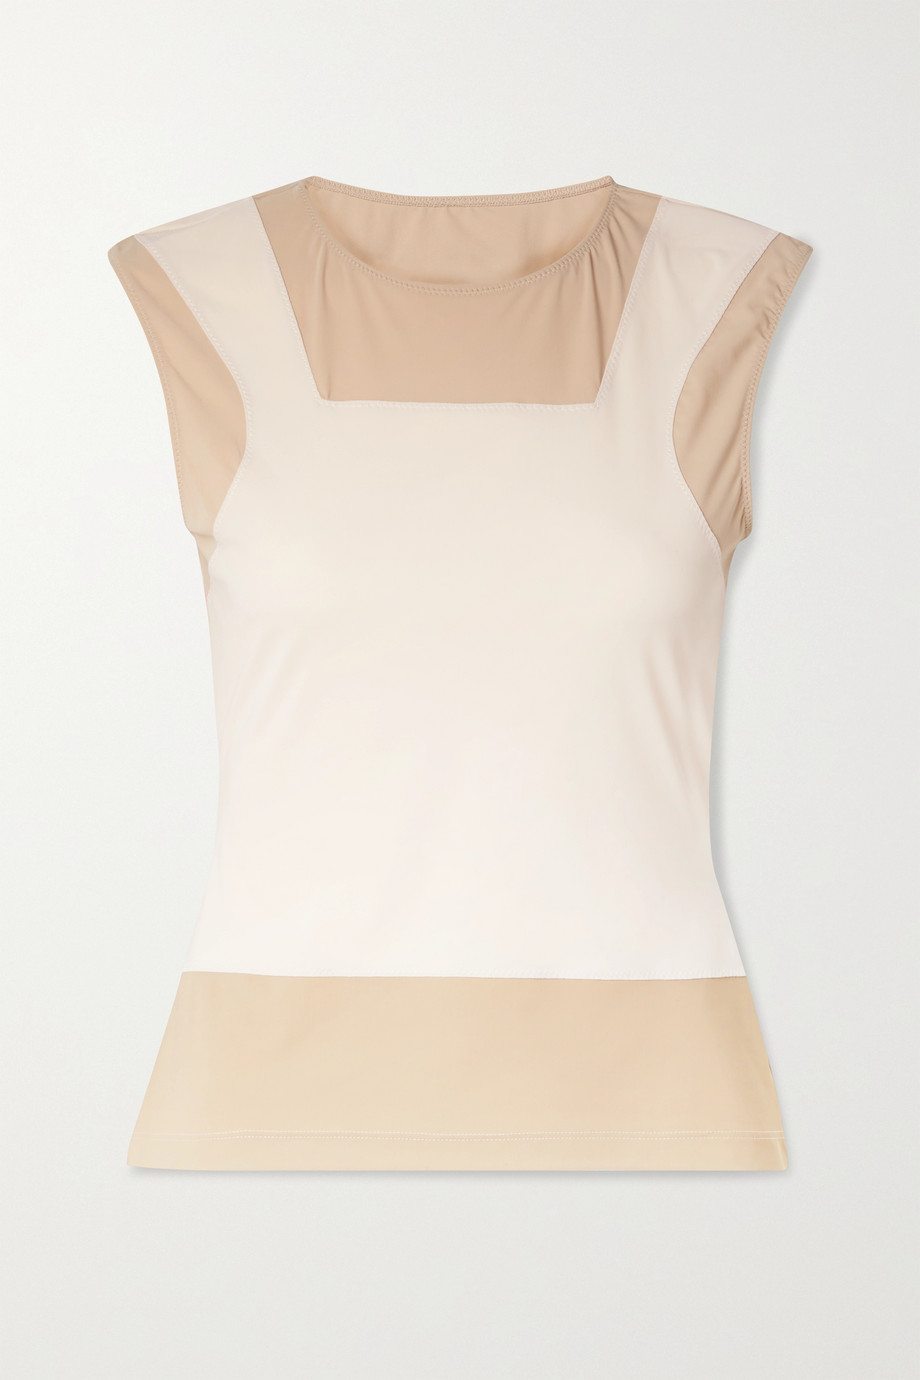 MM6 Maison Margiela Trompe-l'œil color-block stretch-jersey top